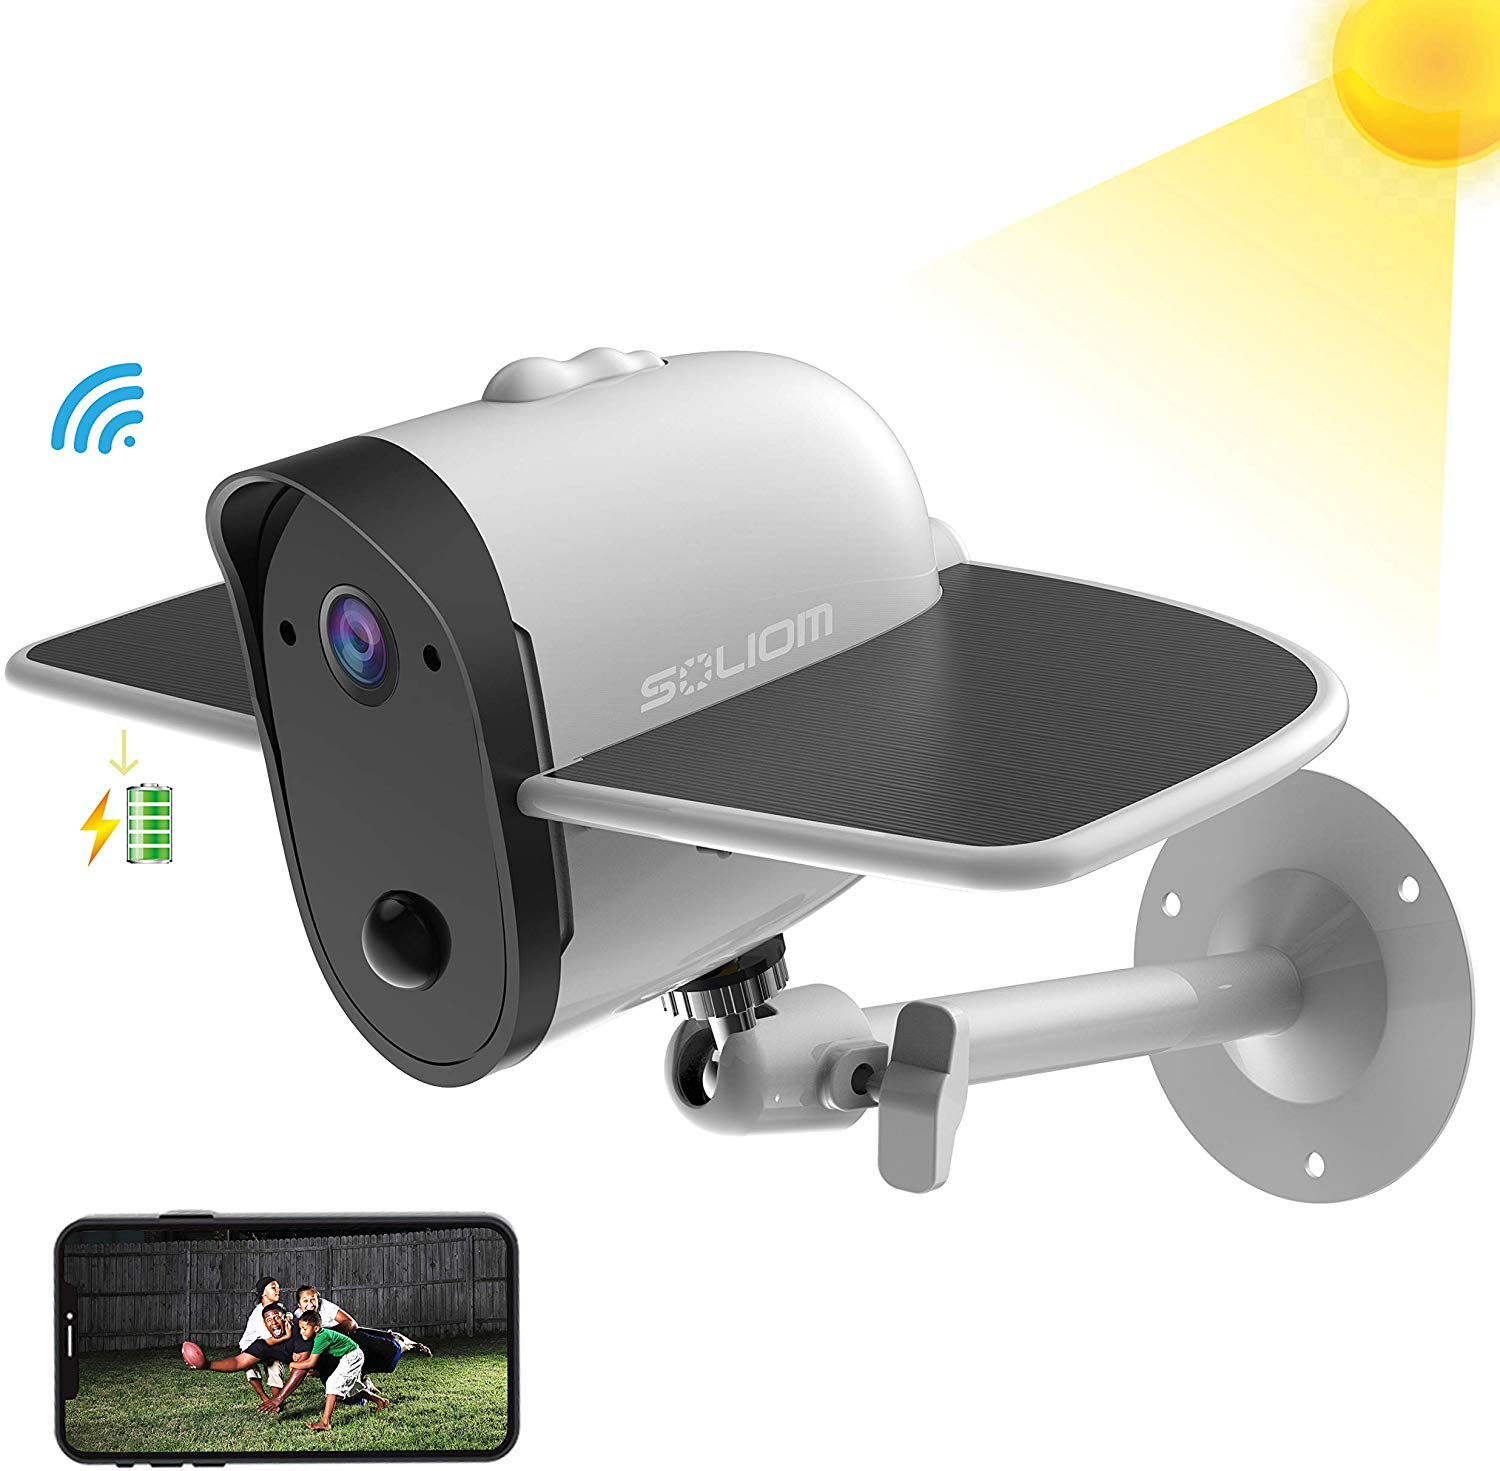 SOLIOM S60 Outdoor Solar Battery Powered Security Camera